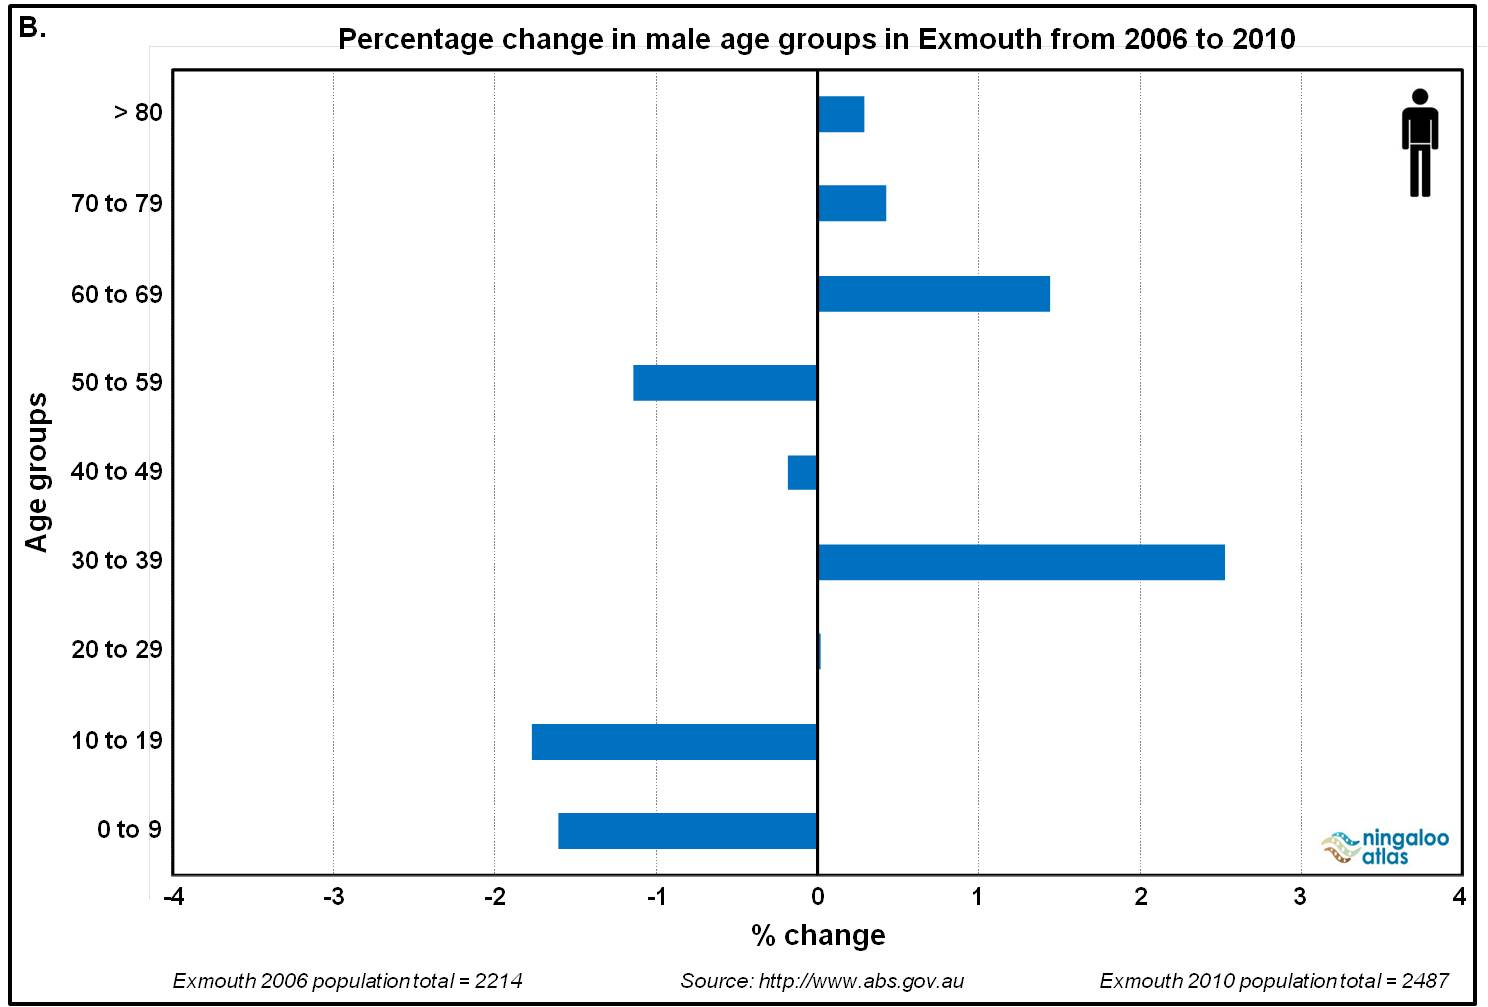 Exmouth male age group change